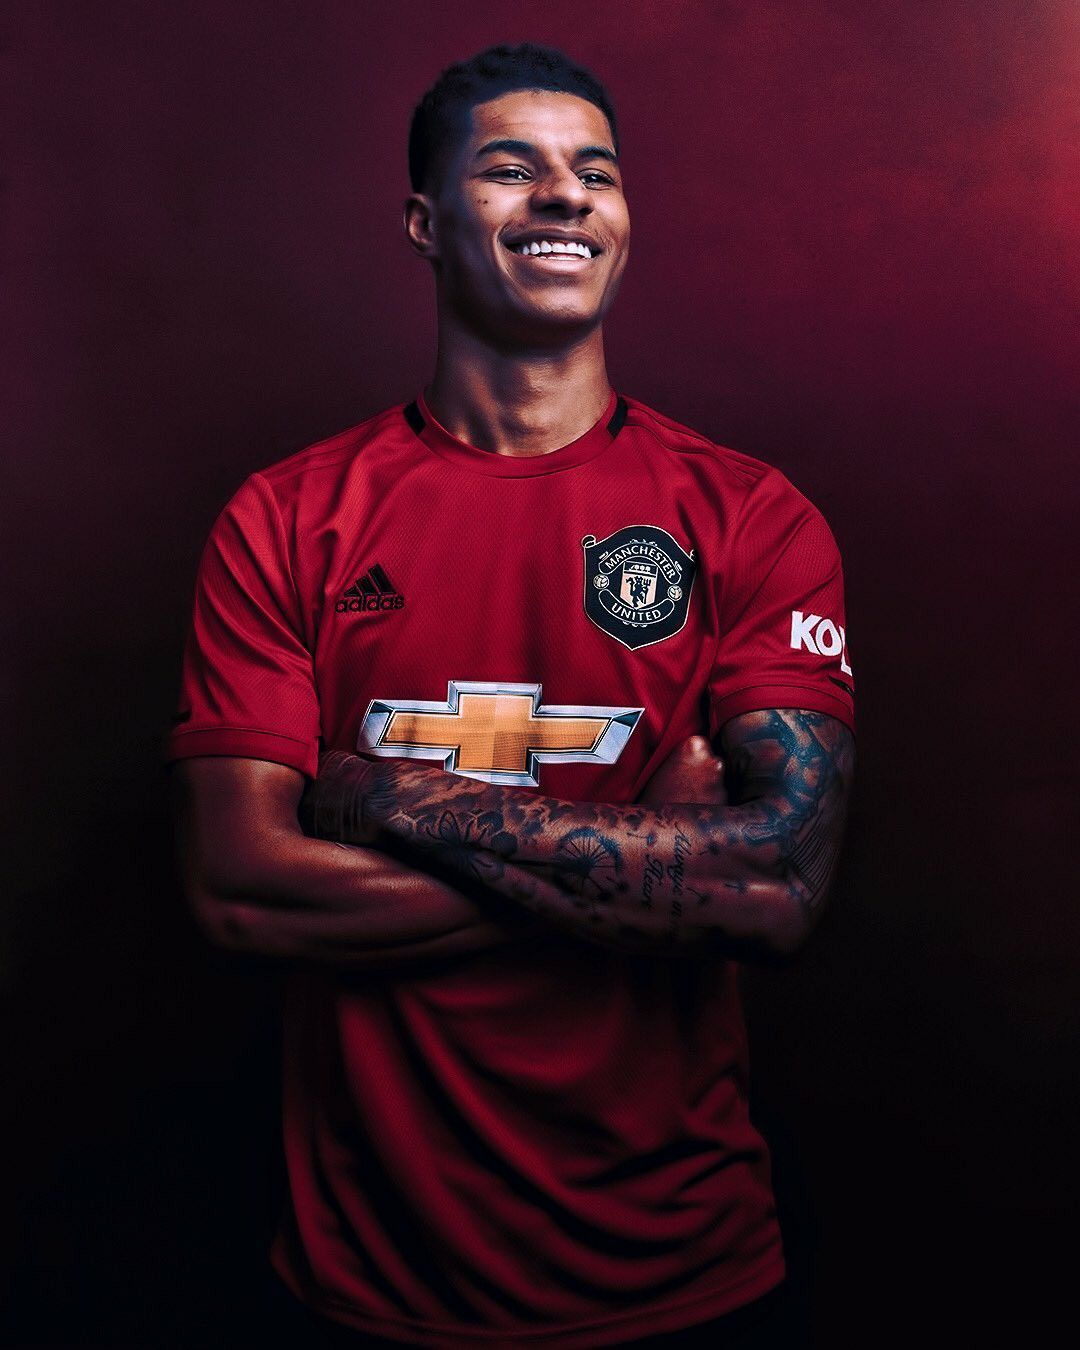 Marcus Rashford In 2020 Manchester United Wallpaper Manchester United Fans Manchester United Players